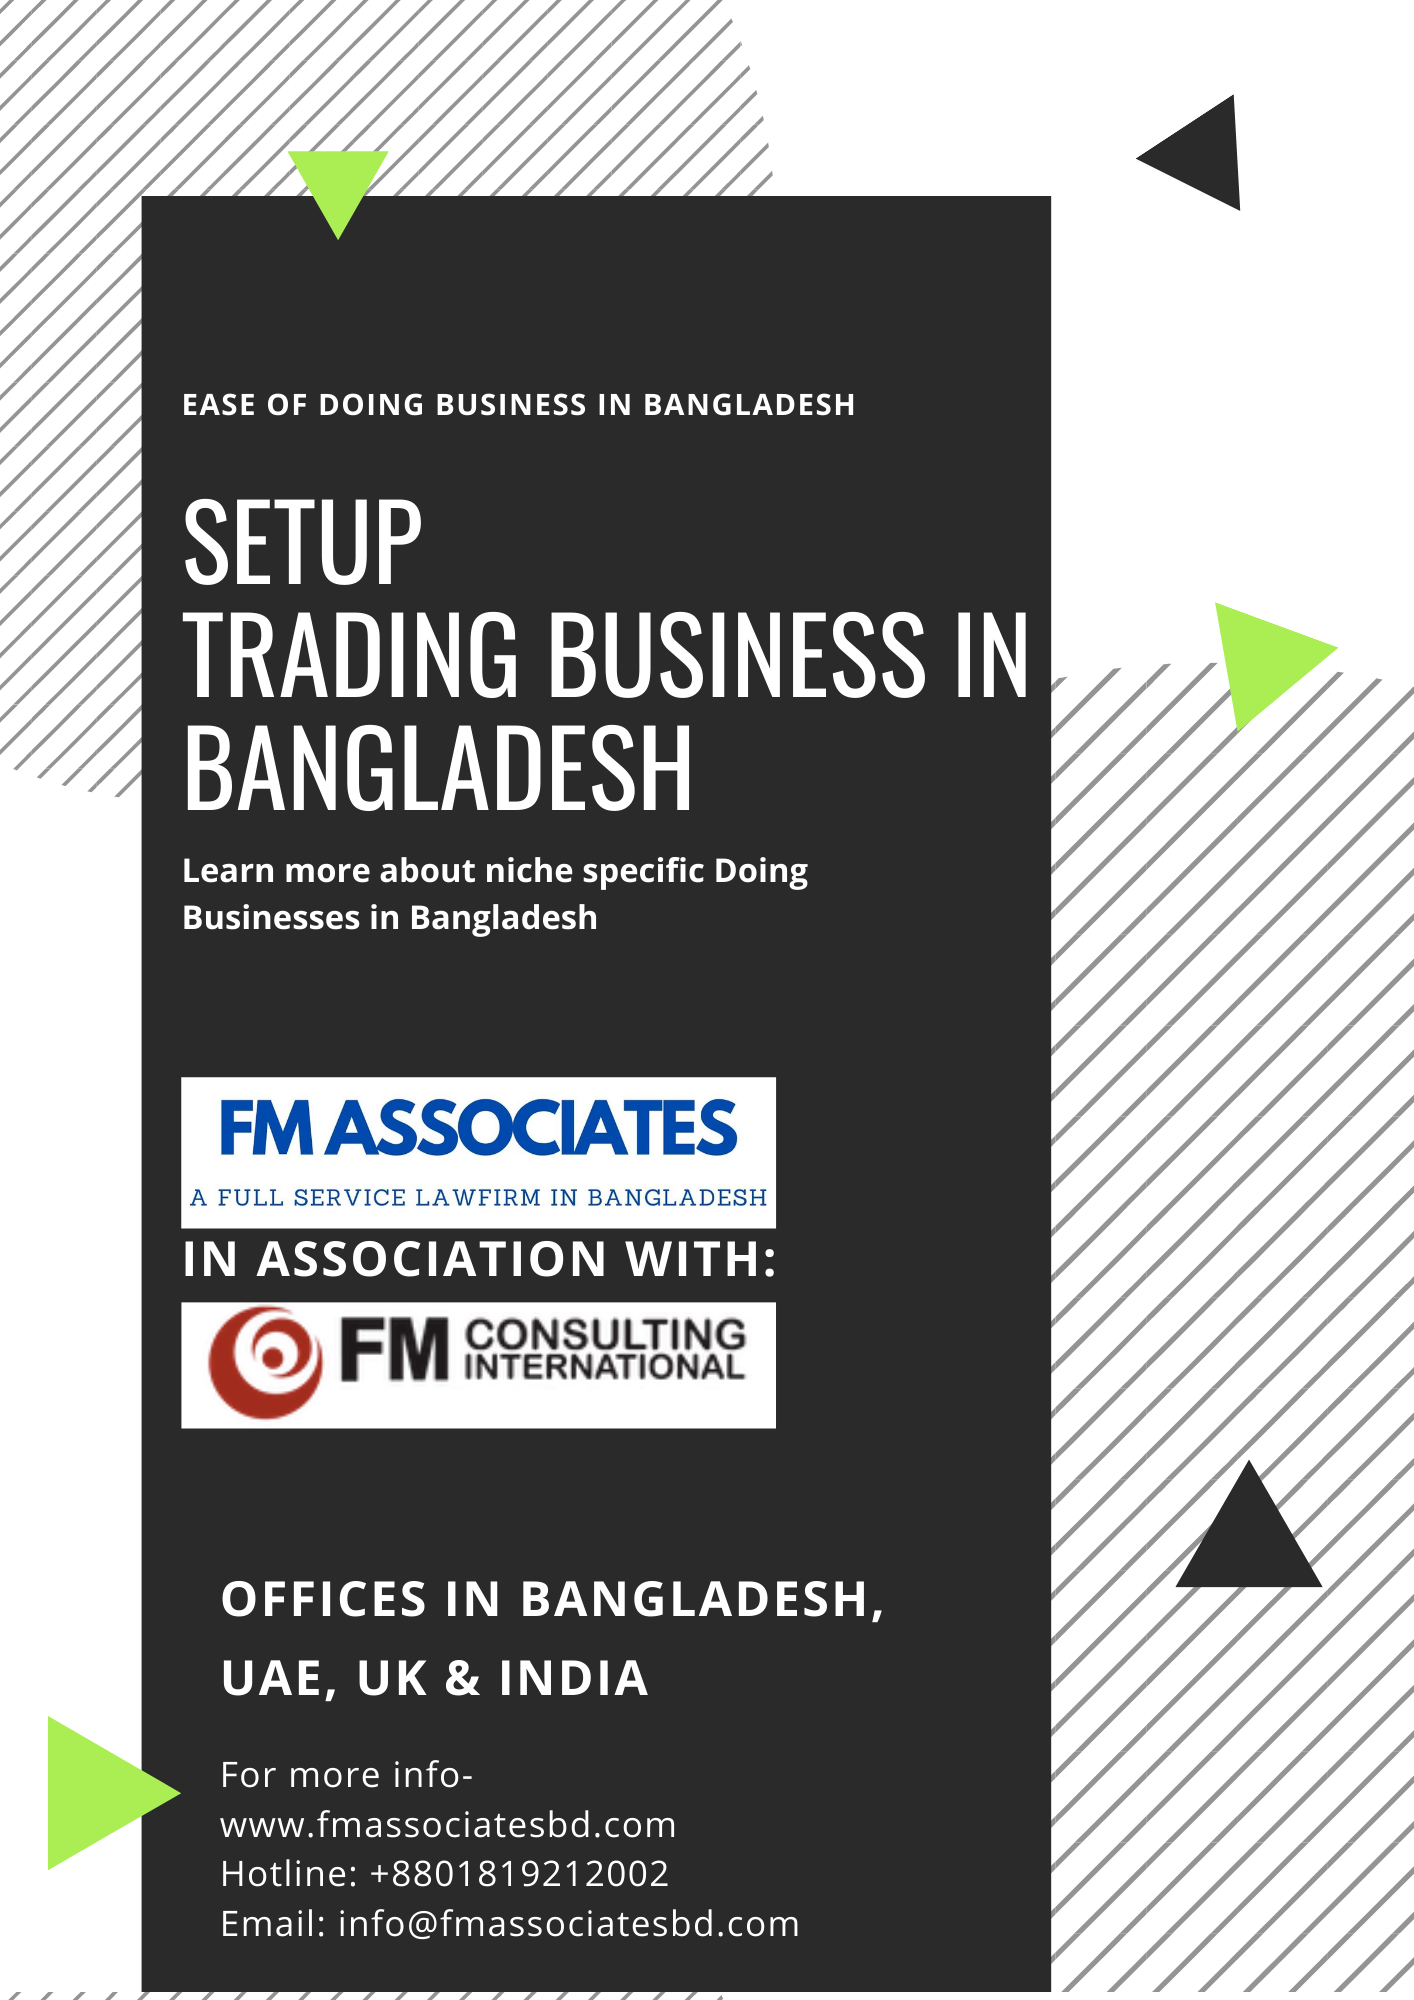 How to Setup Trading Business in Bangladesh